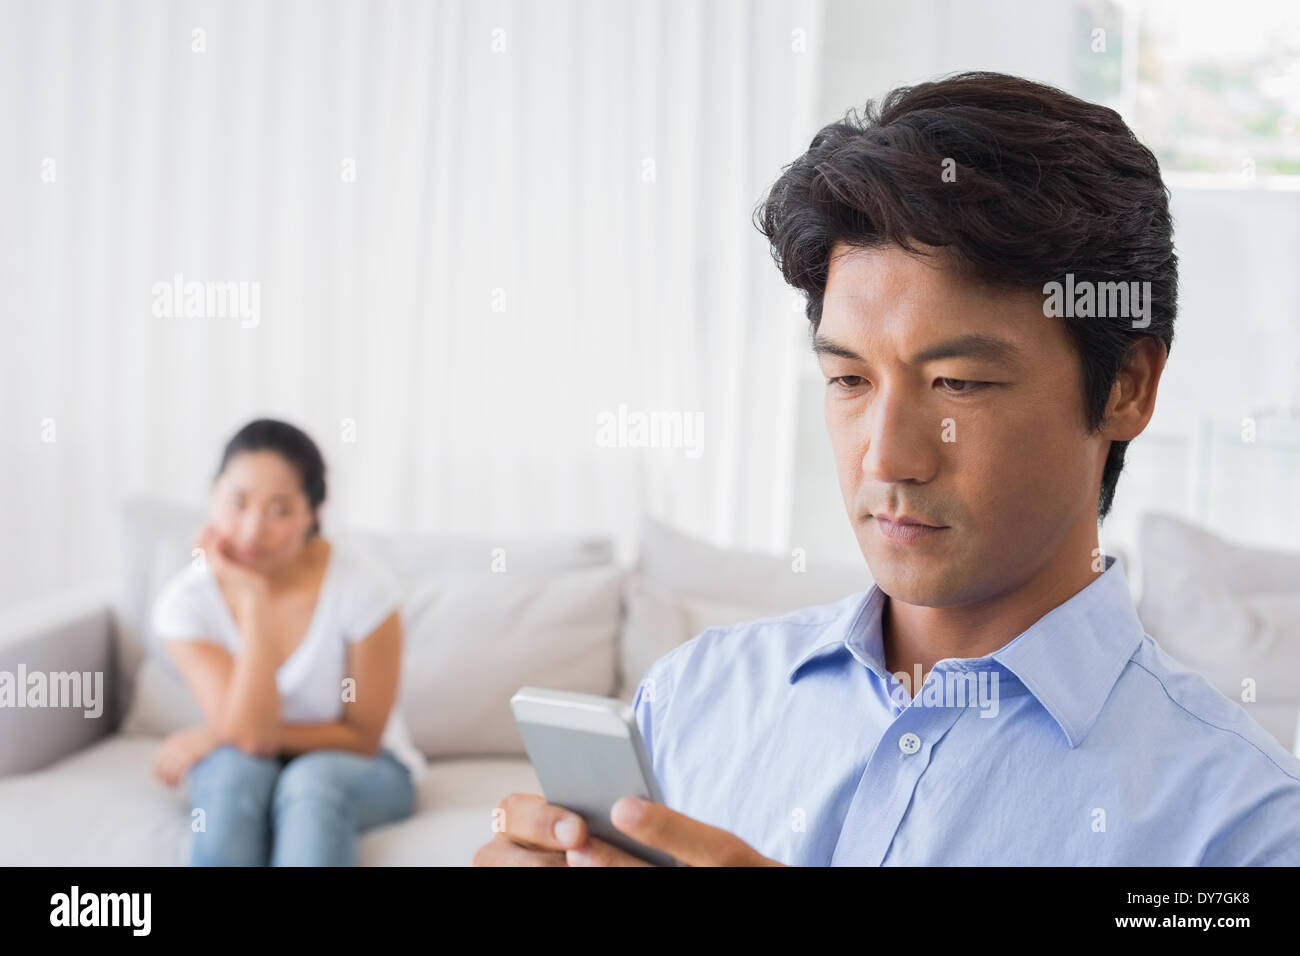 Man sending a text while girlfriend watches from couch - Stock Image